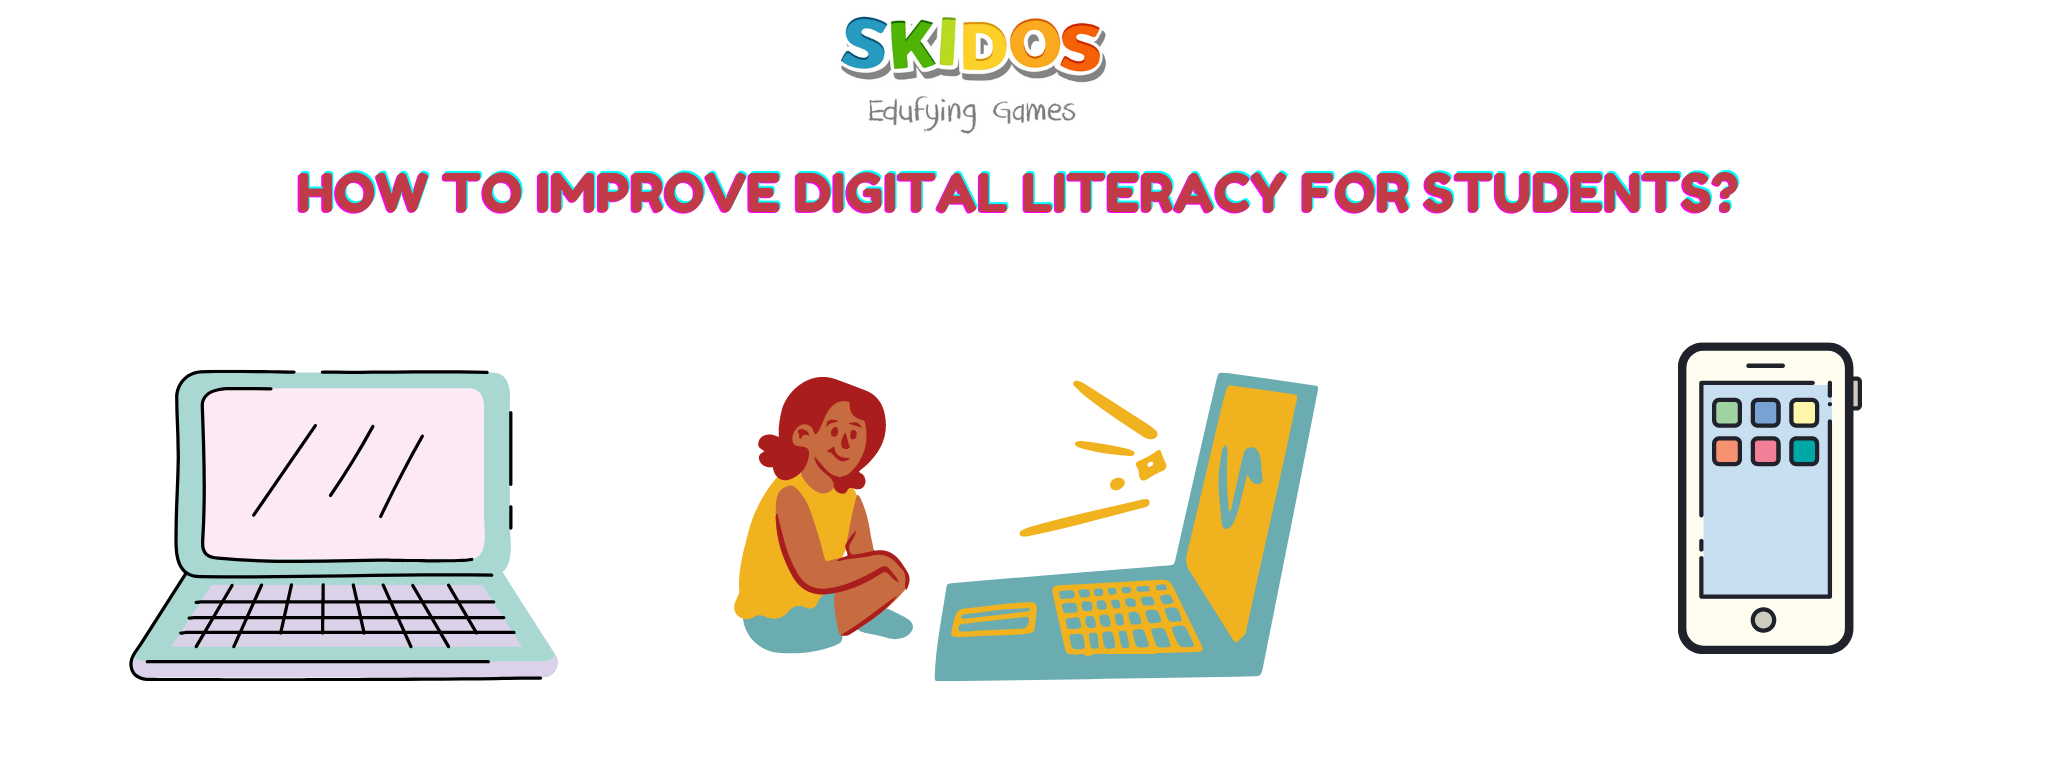 How to improve digital literacy for students, children